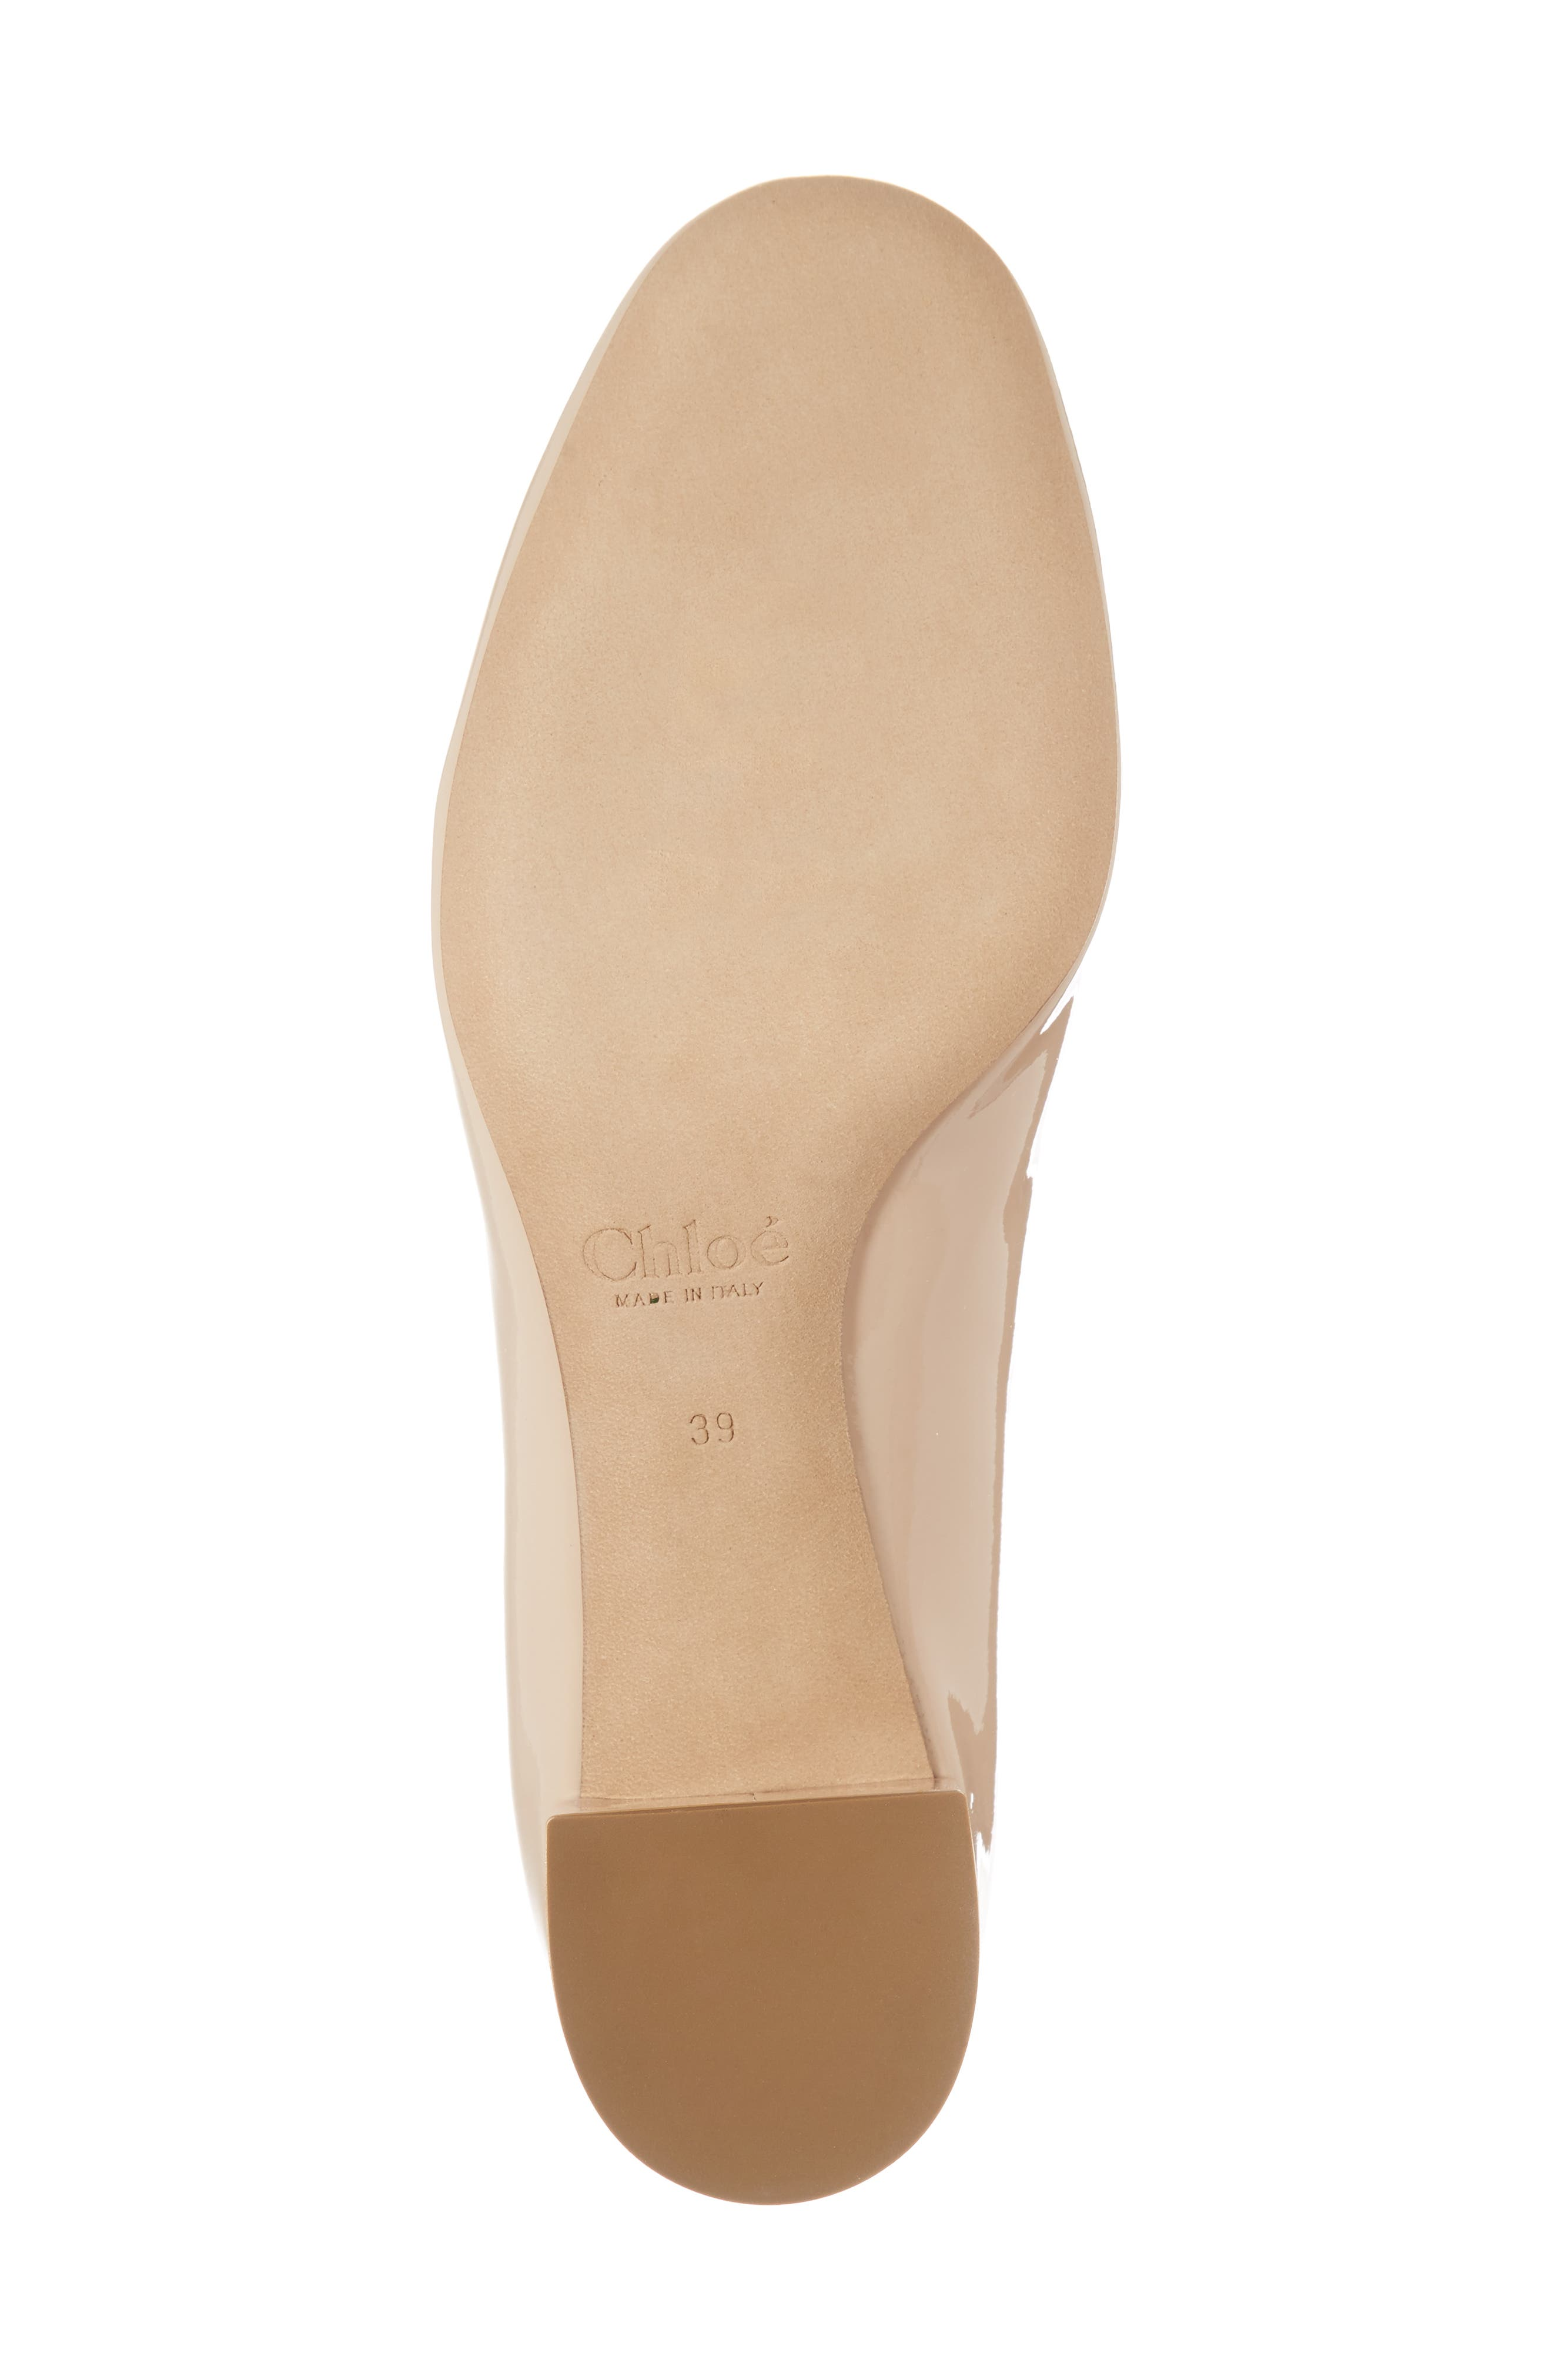 Lauren Pump,                             Alternate thumbnail 6, color,                             Mild Beige Patent